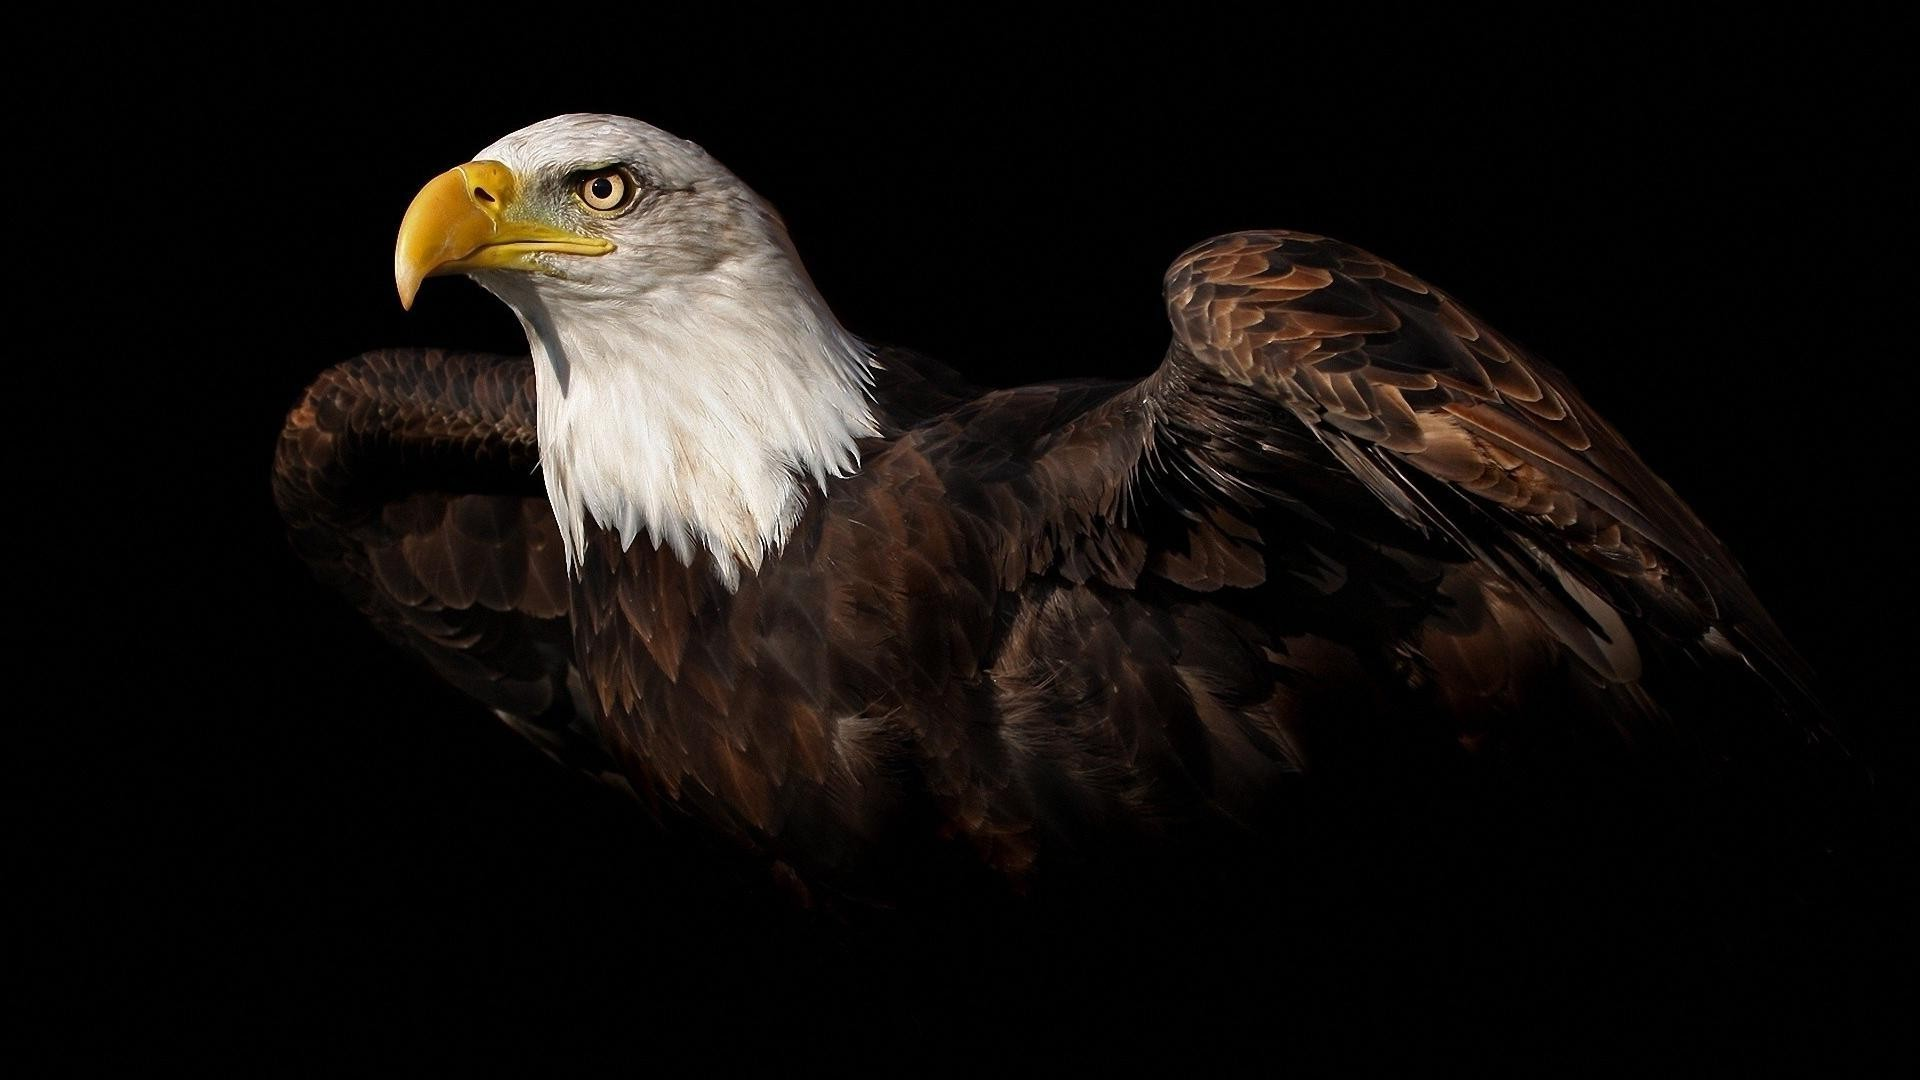 1920x1080 Bald Eagle Wallpaper HD Images 5